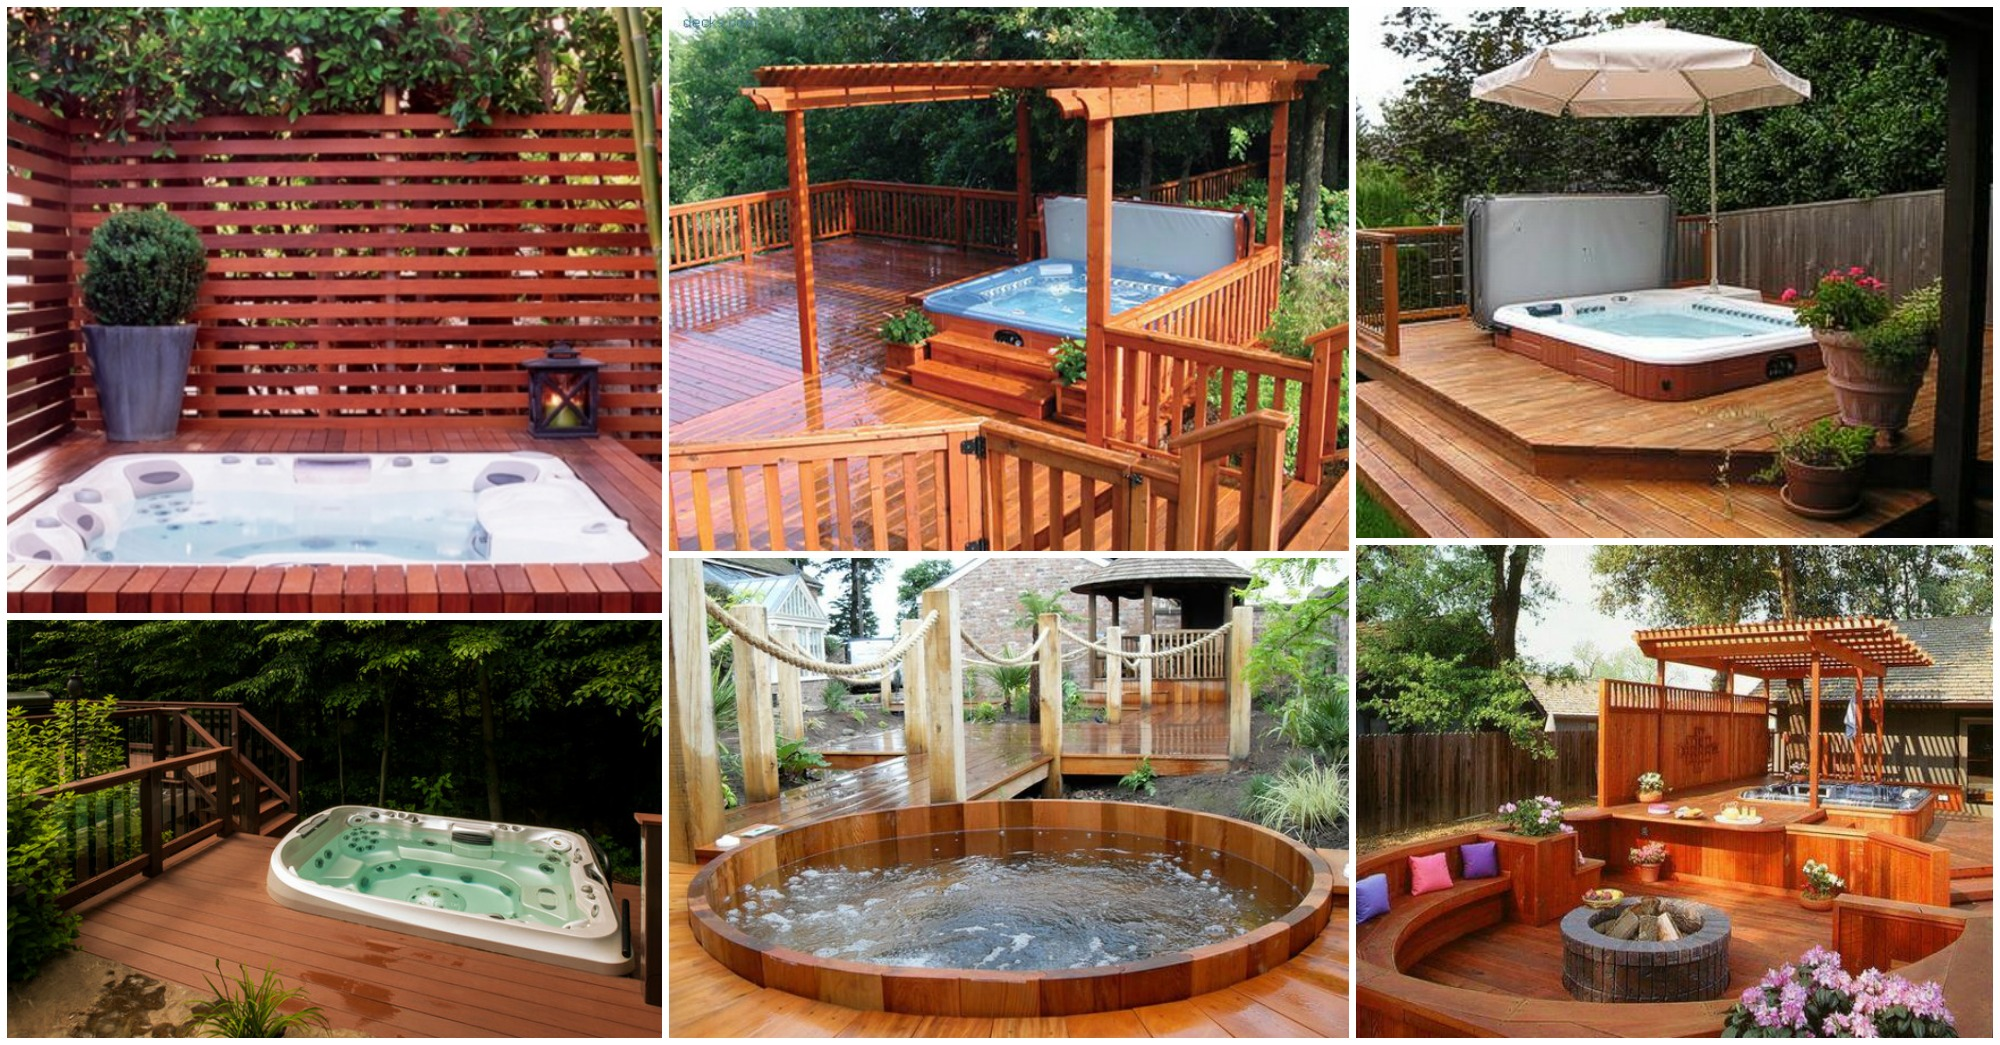 Deck Design Ideas With Hot Tubs That Will Blow Your Mind on Deck And Hot Tub Ideas  id=49850